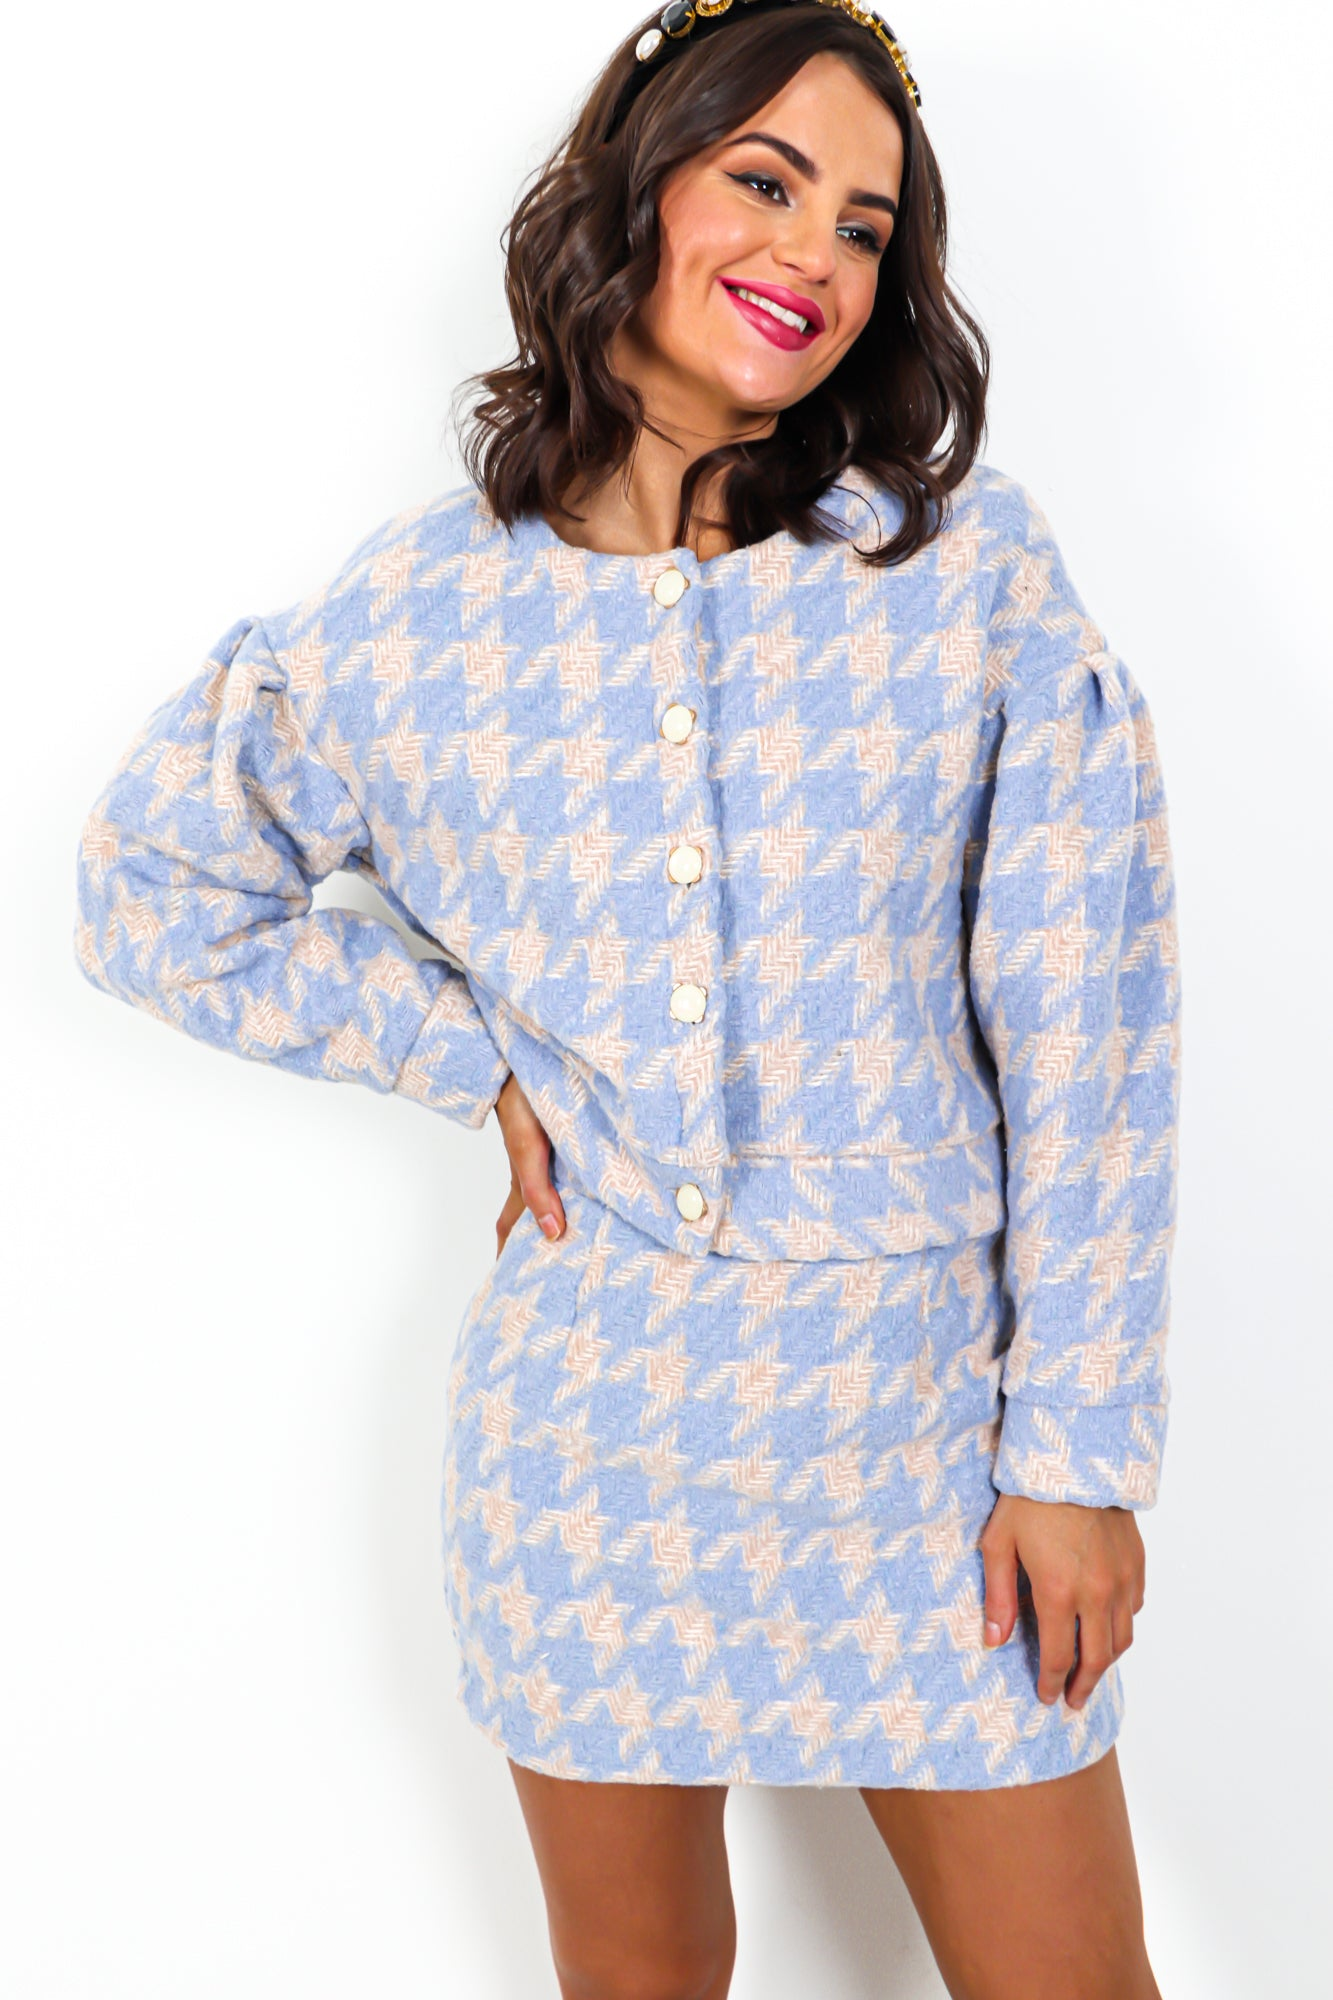 So Clueless - Co-ord In BLUE/BEIGE